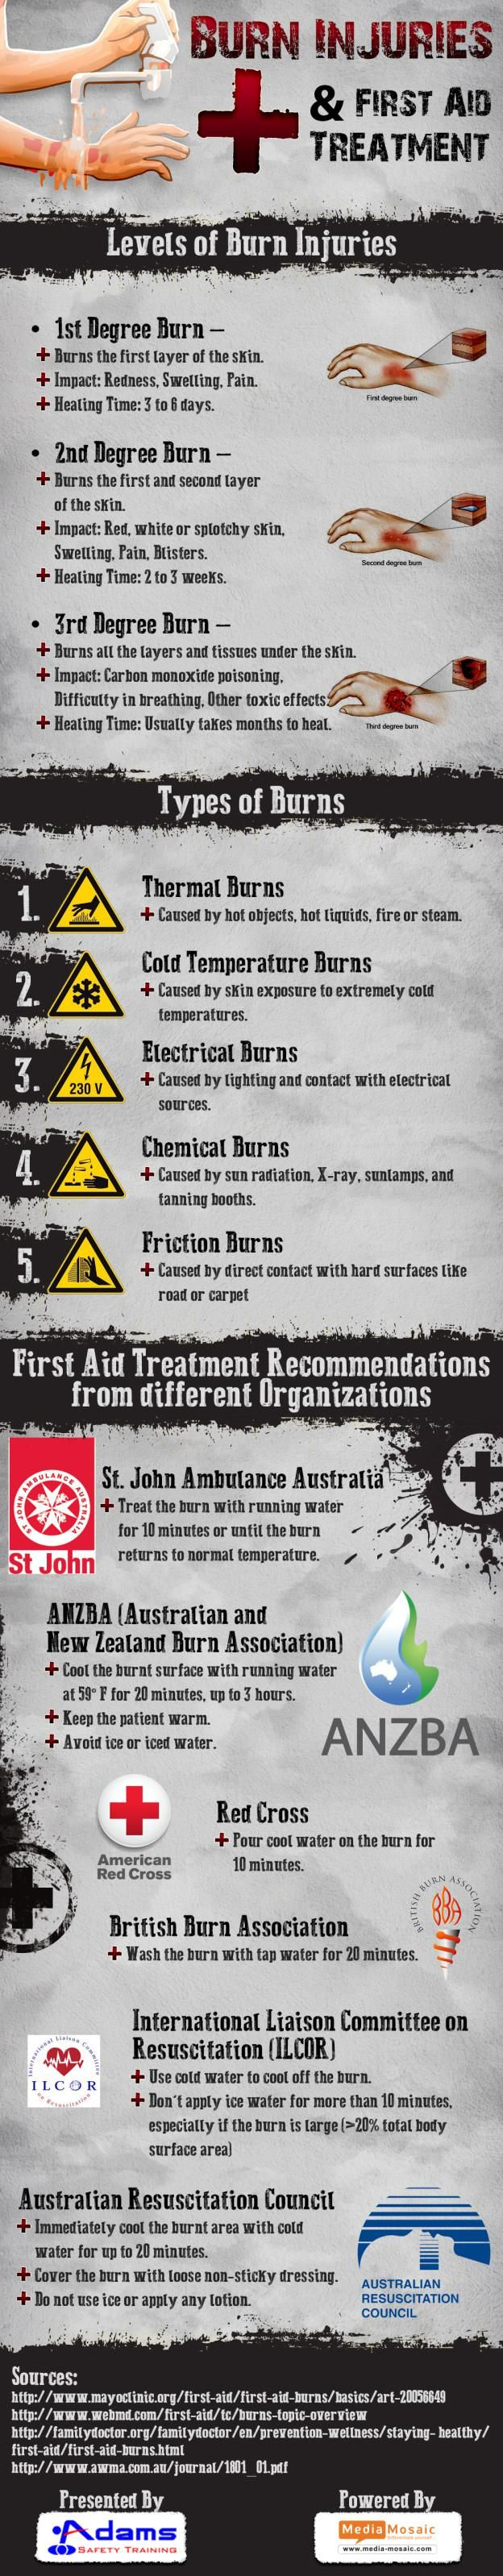 Burn Injuries: Levels, Types and First Aid Treatment - Infogram, charts & infographics